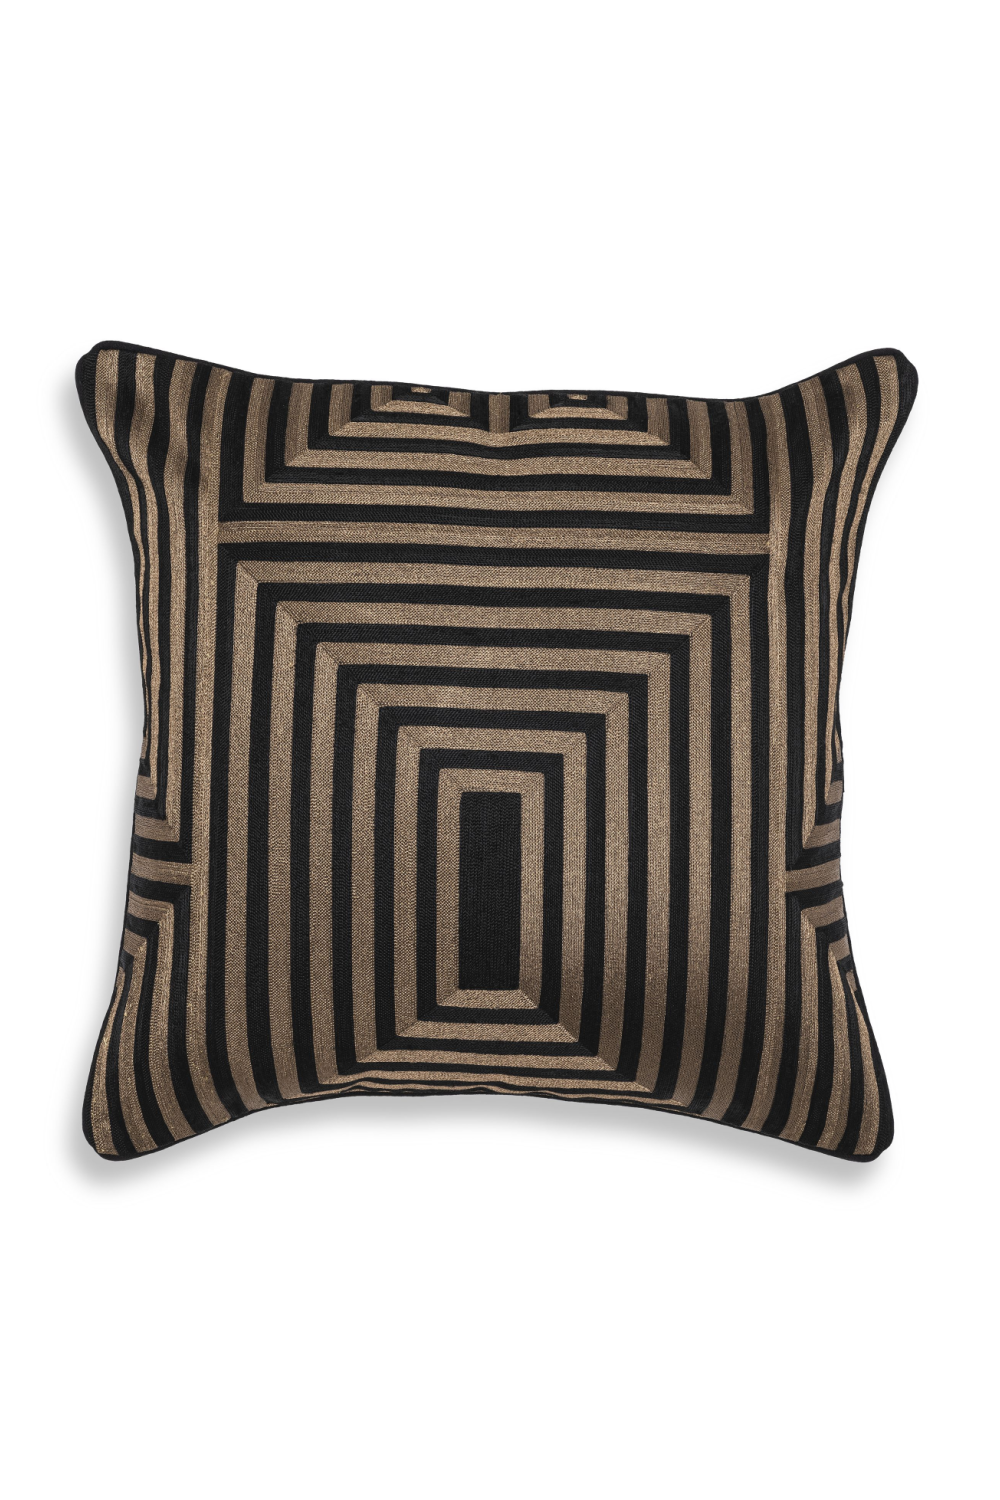 Geometric Pattern Pillow | Eichholtz Spray | #1 Eichholtz Retailer